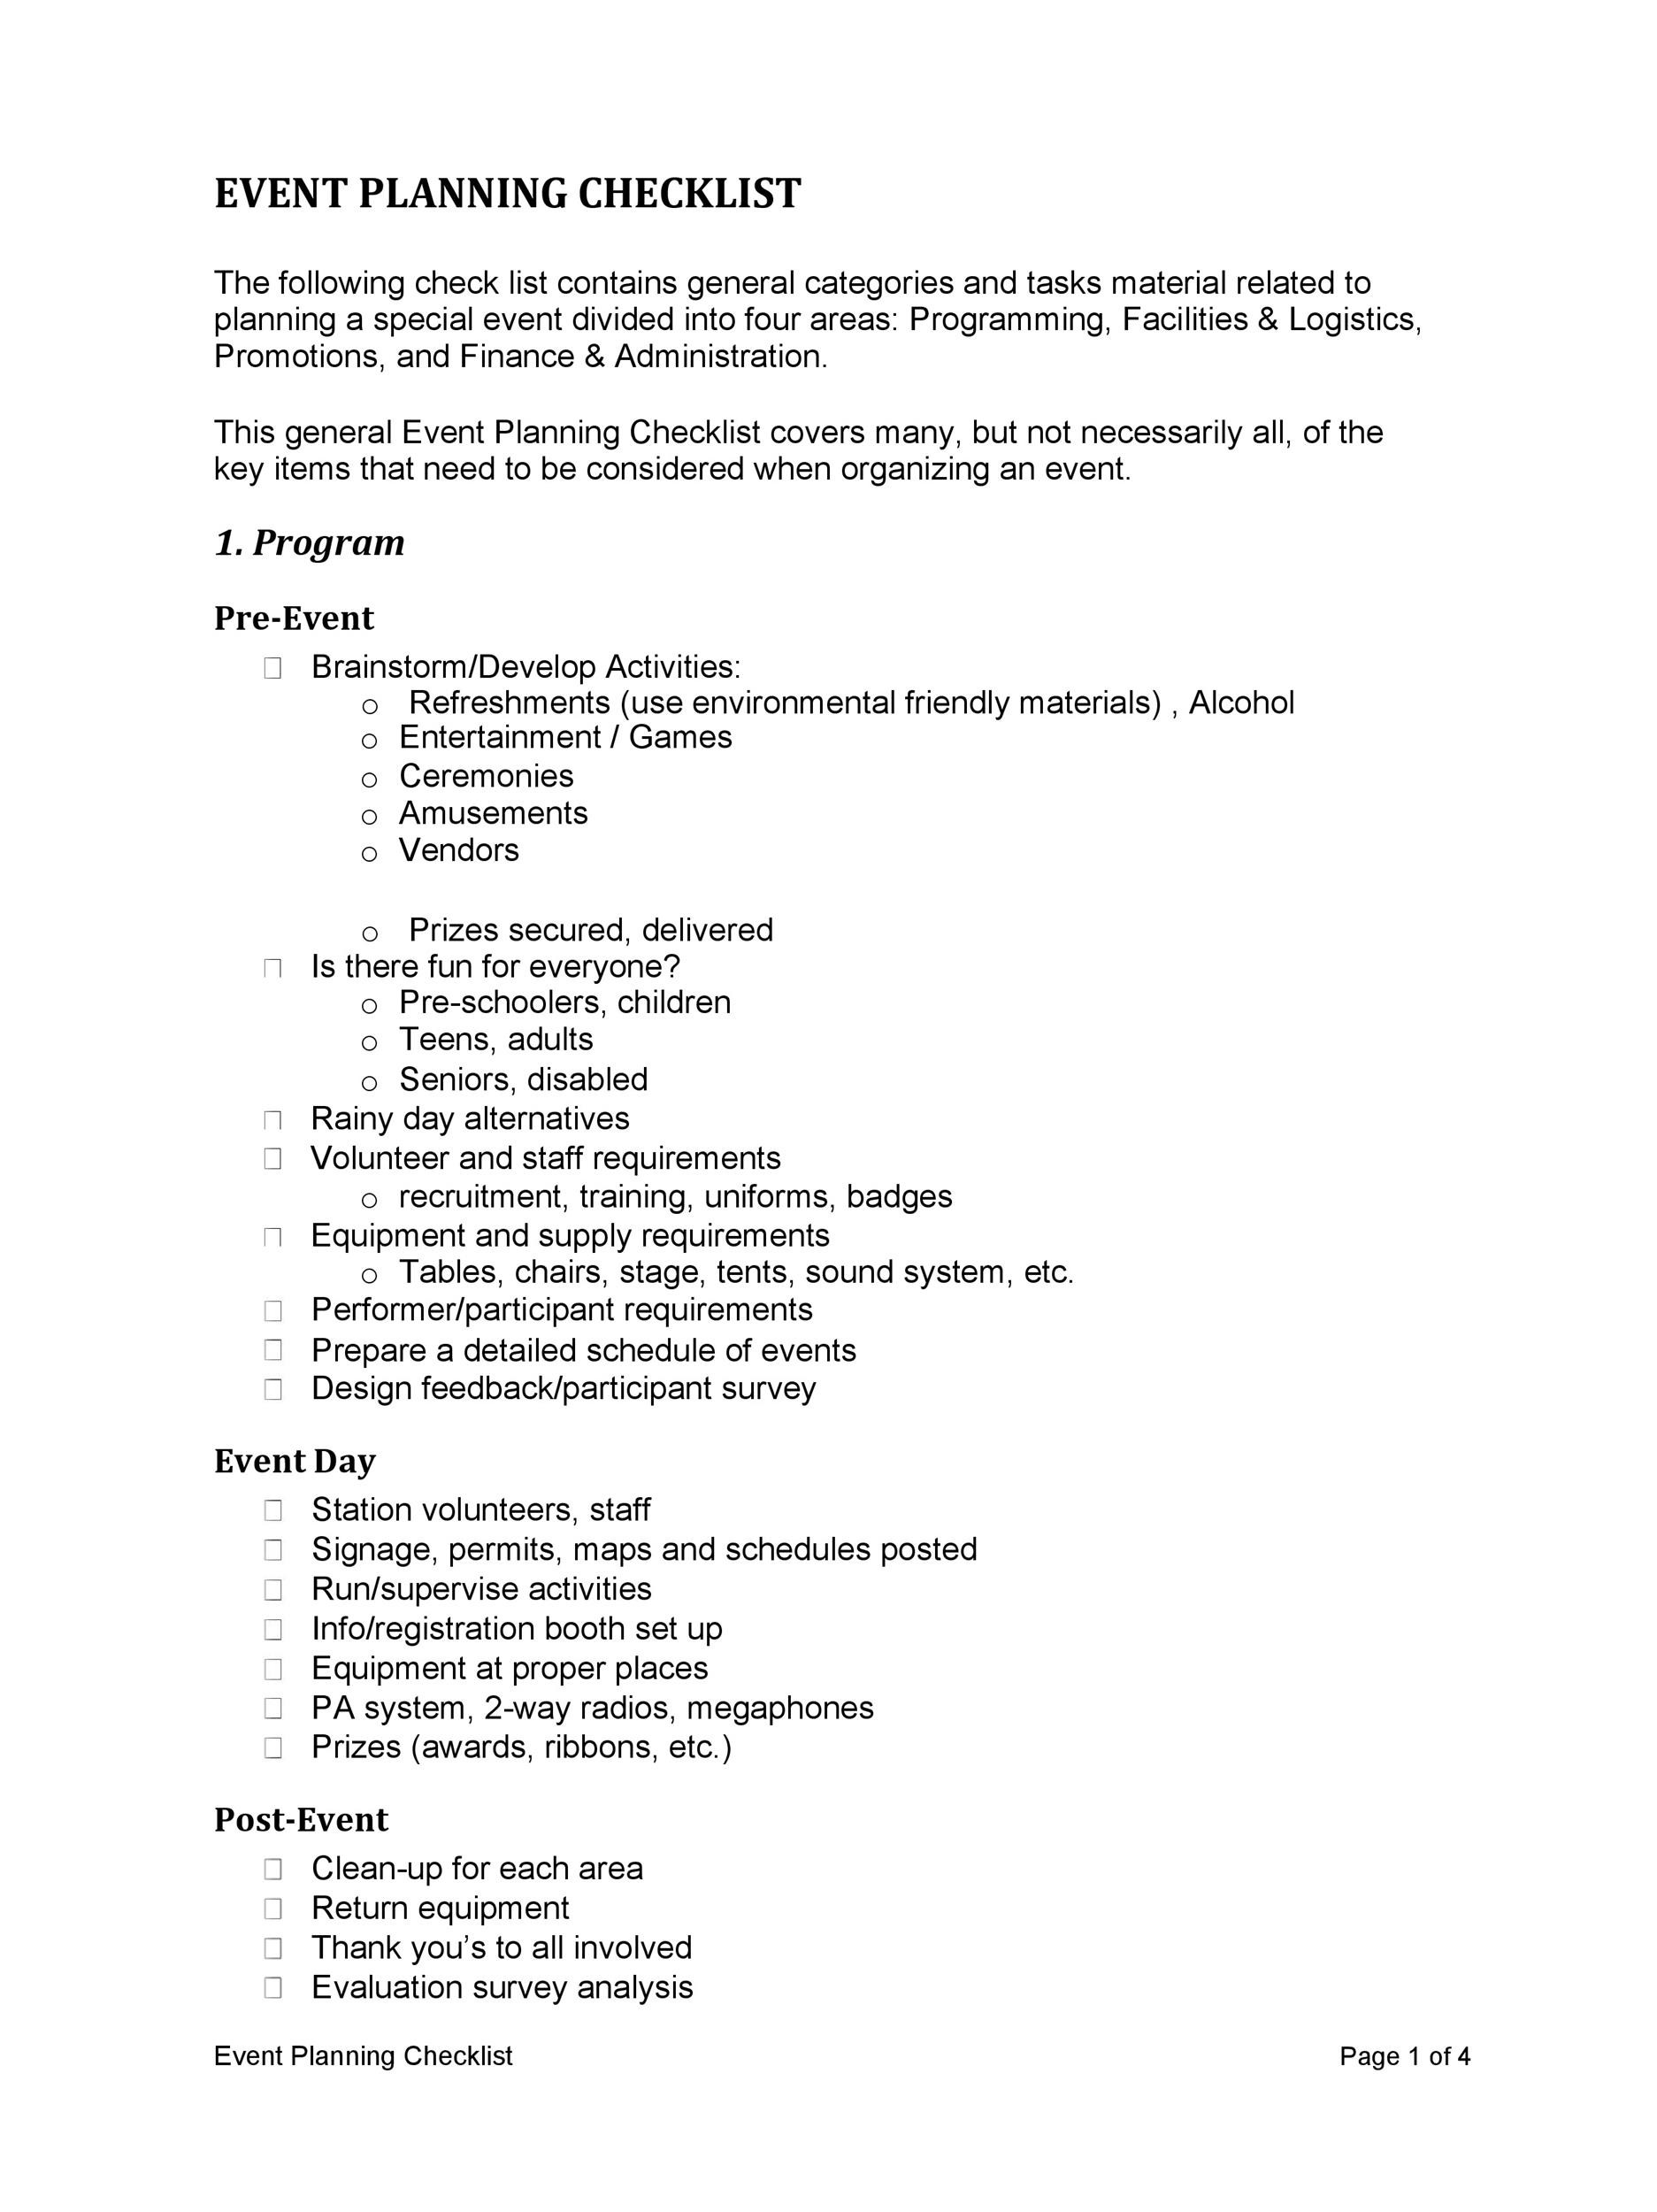 50 Professional Event Planning Checklist Templates ᐅ Template Lab